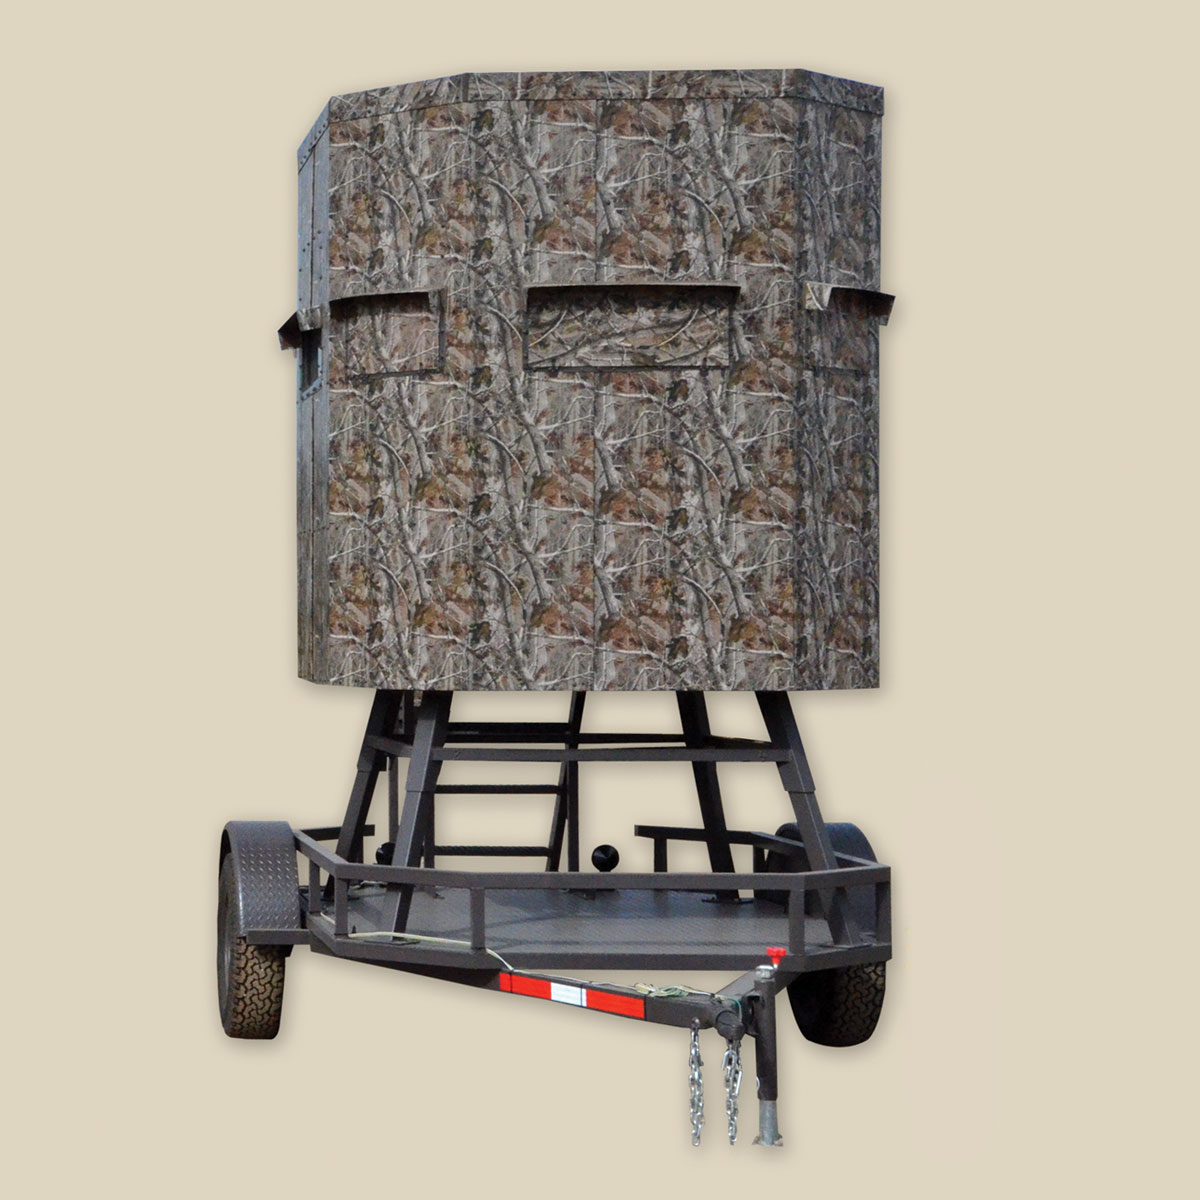 RANCH KING 6×6 ECONOMY ELEVATED TRAILER BLIND